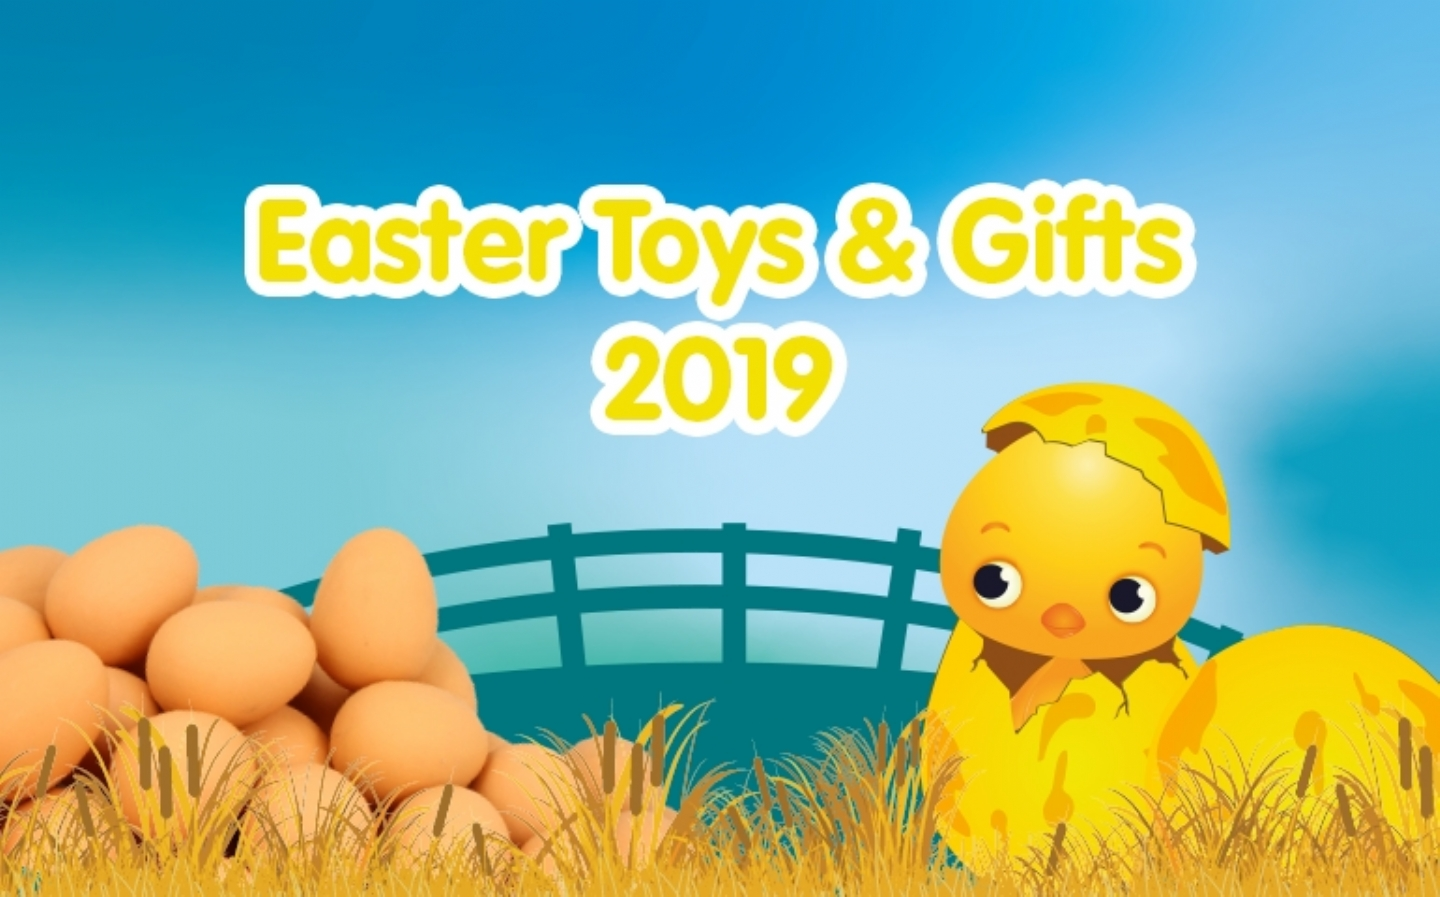 Optimise your impulse opportunity with Easter toys and gifts